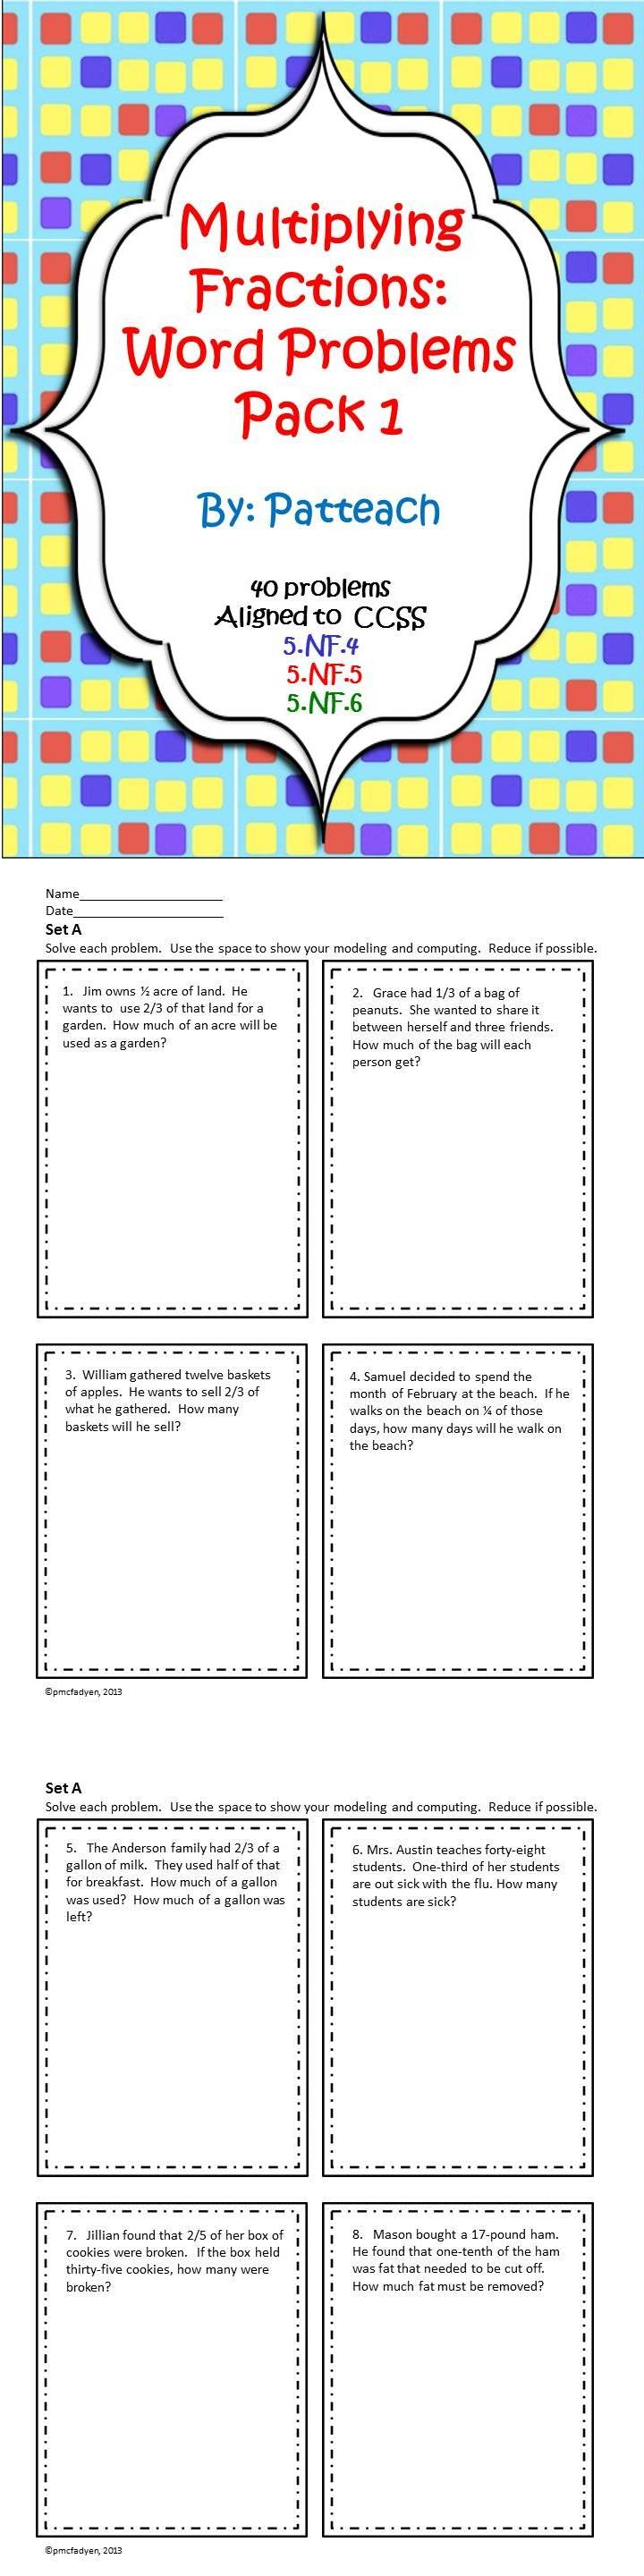 25 Best Ideas About Fraction Word Problems On Pinterest